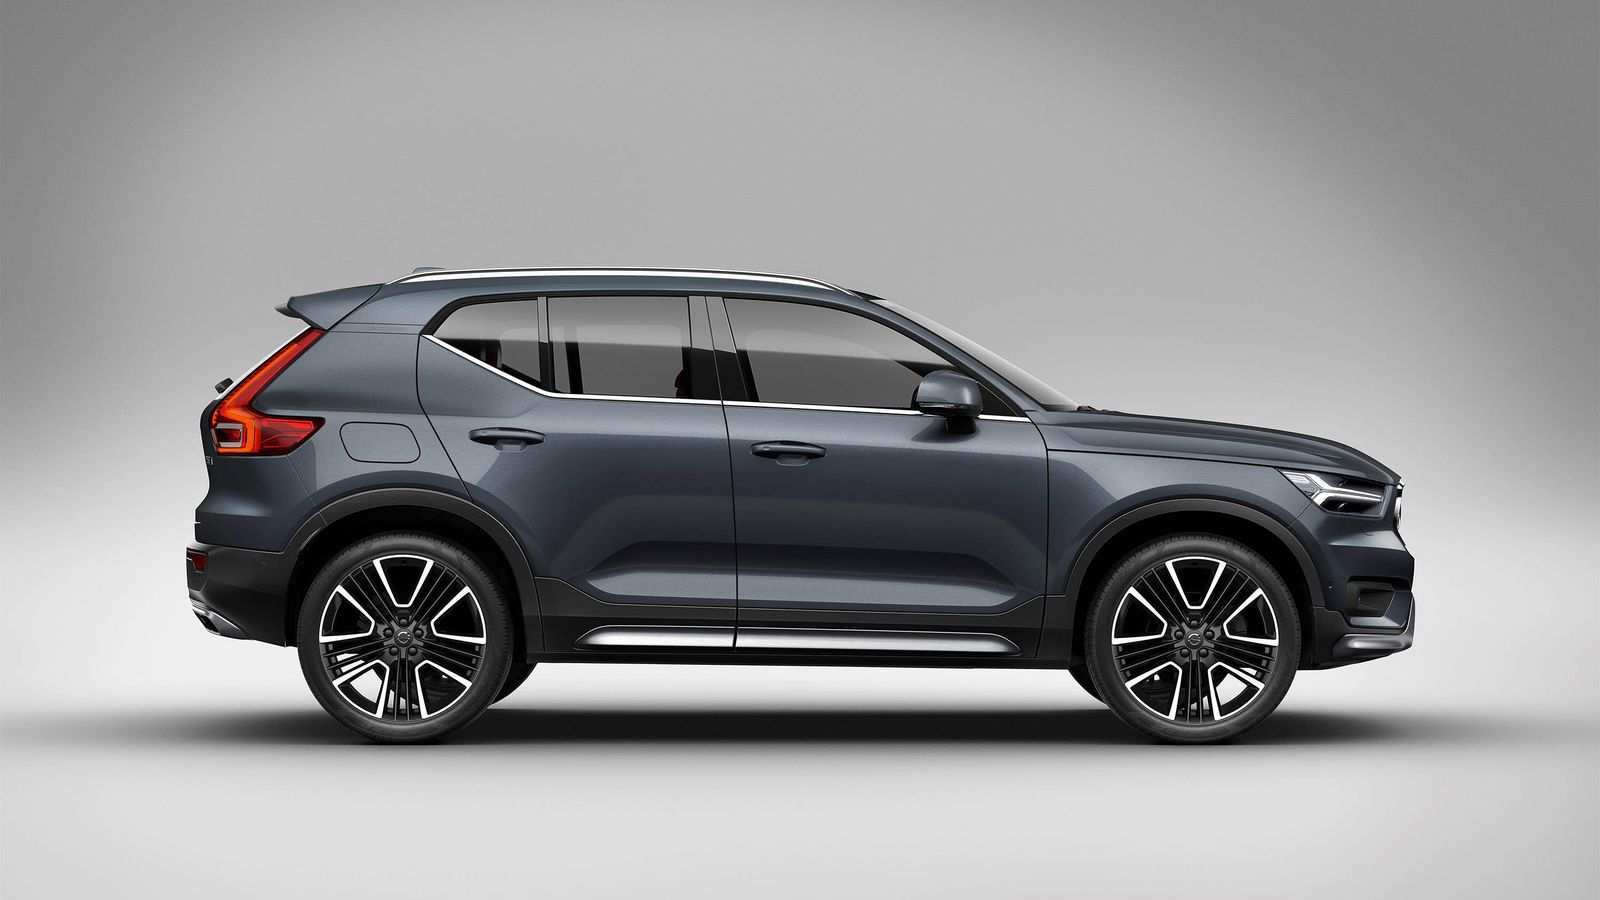 72 All New Volvo Cx40 2019 Price Design And Review